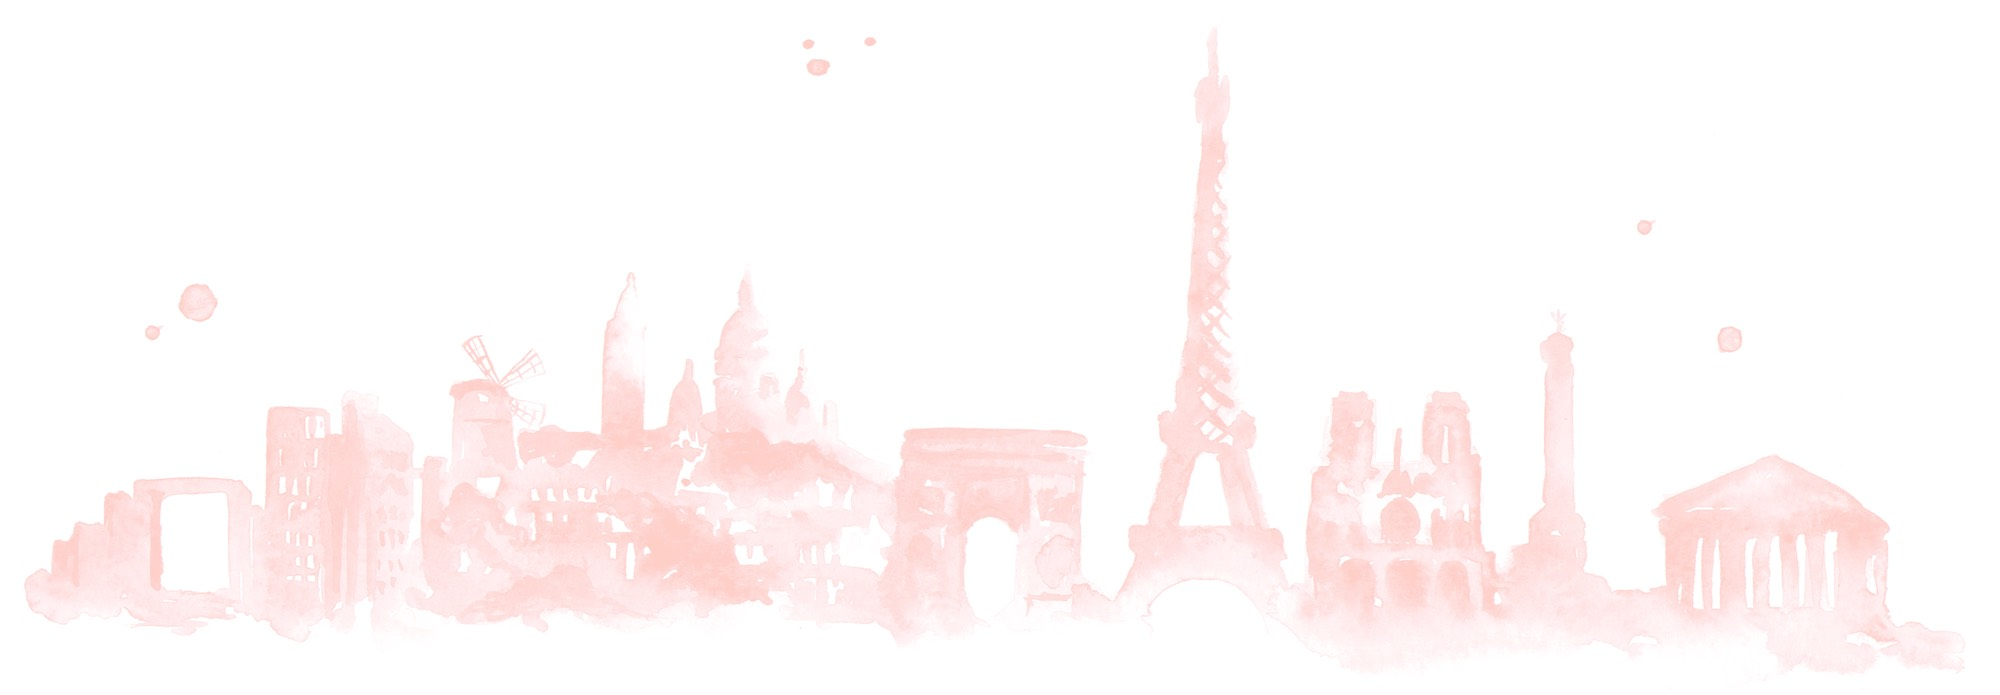 Paris Skyline Illustration